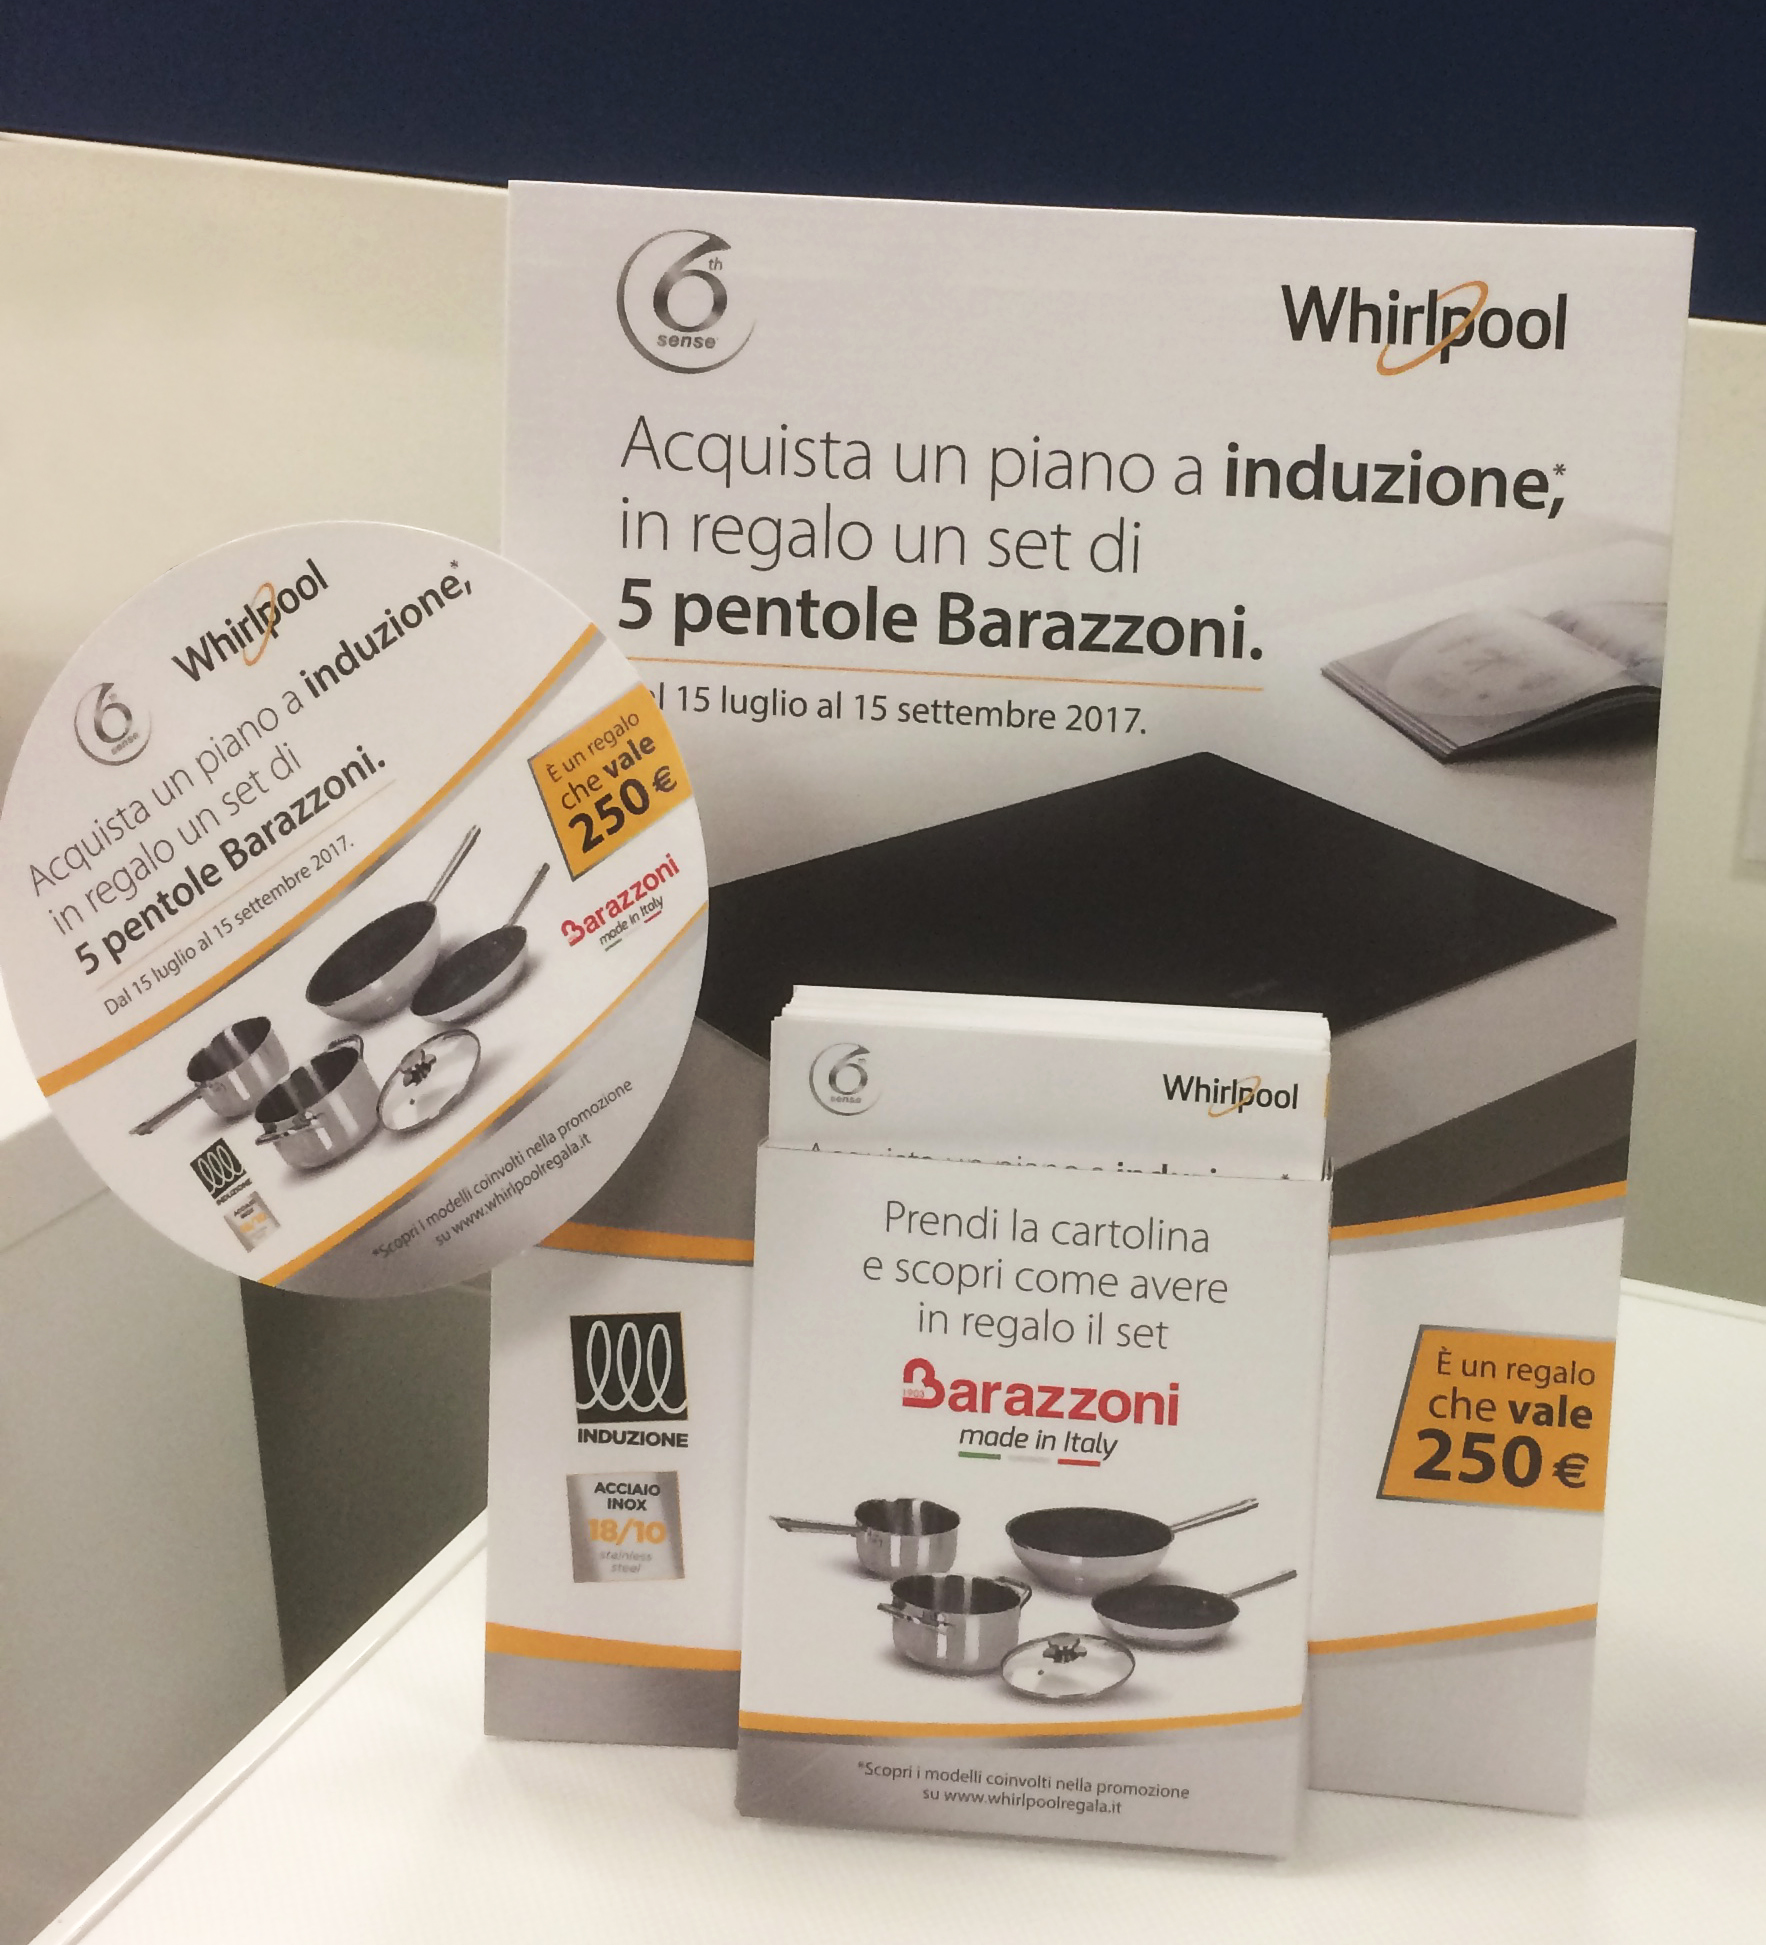 https://www.promotionmagazine.it/wp/wp-content/uploads/2017/07/Whirlpool_Brazzoni_02.jpg